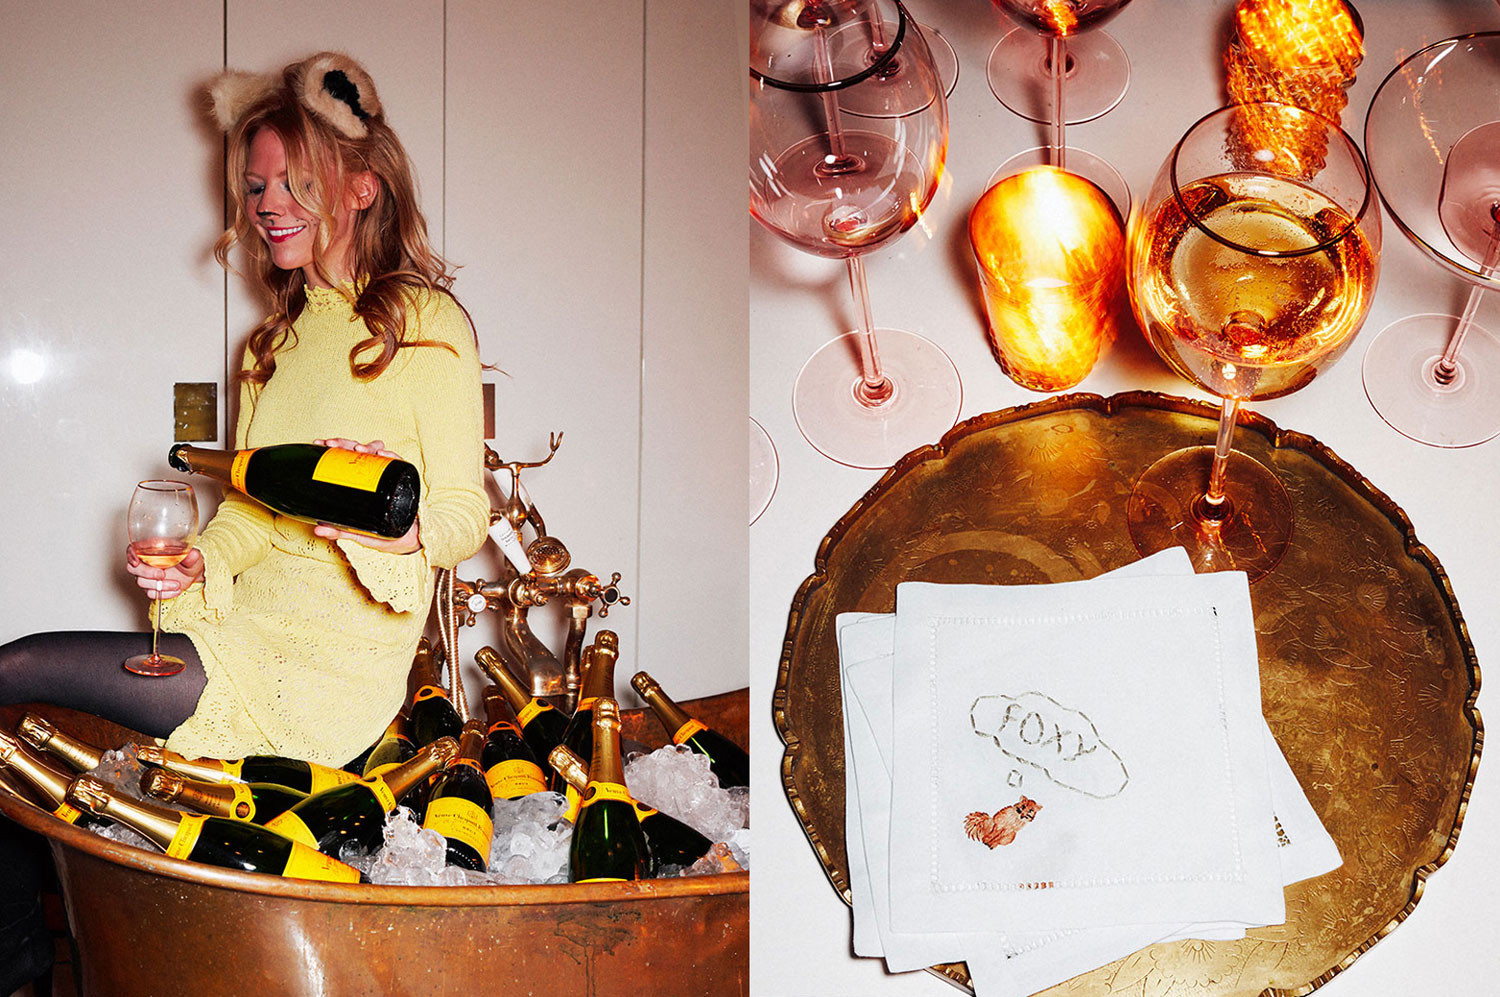 A freestanding copper bathtub ladenwith bottles of Veuve Clicquot Brut Yellow Label awaited party guests.No detail, including embroidered cocktail napkins, was overlooked.